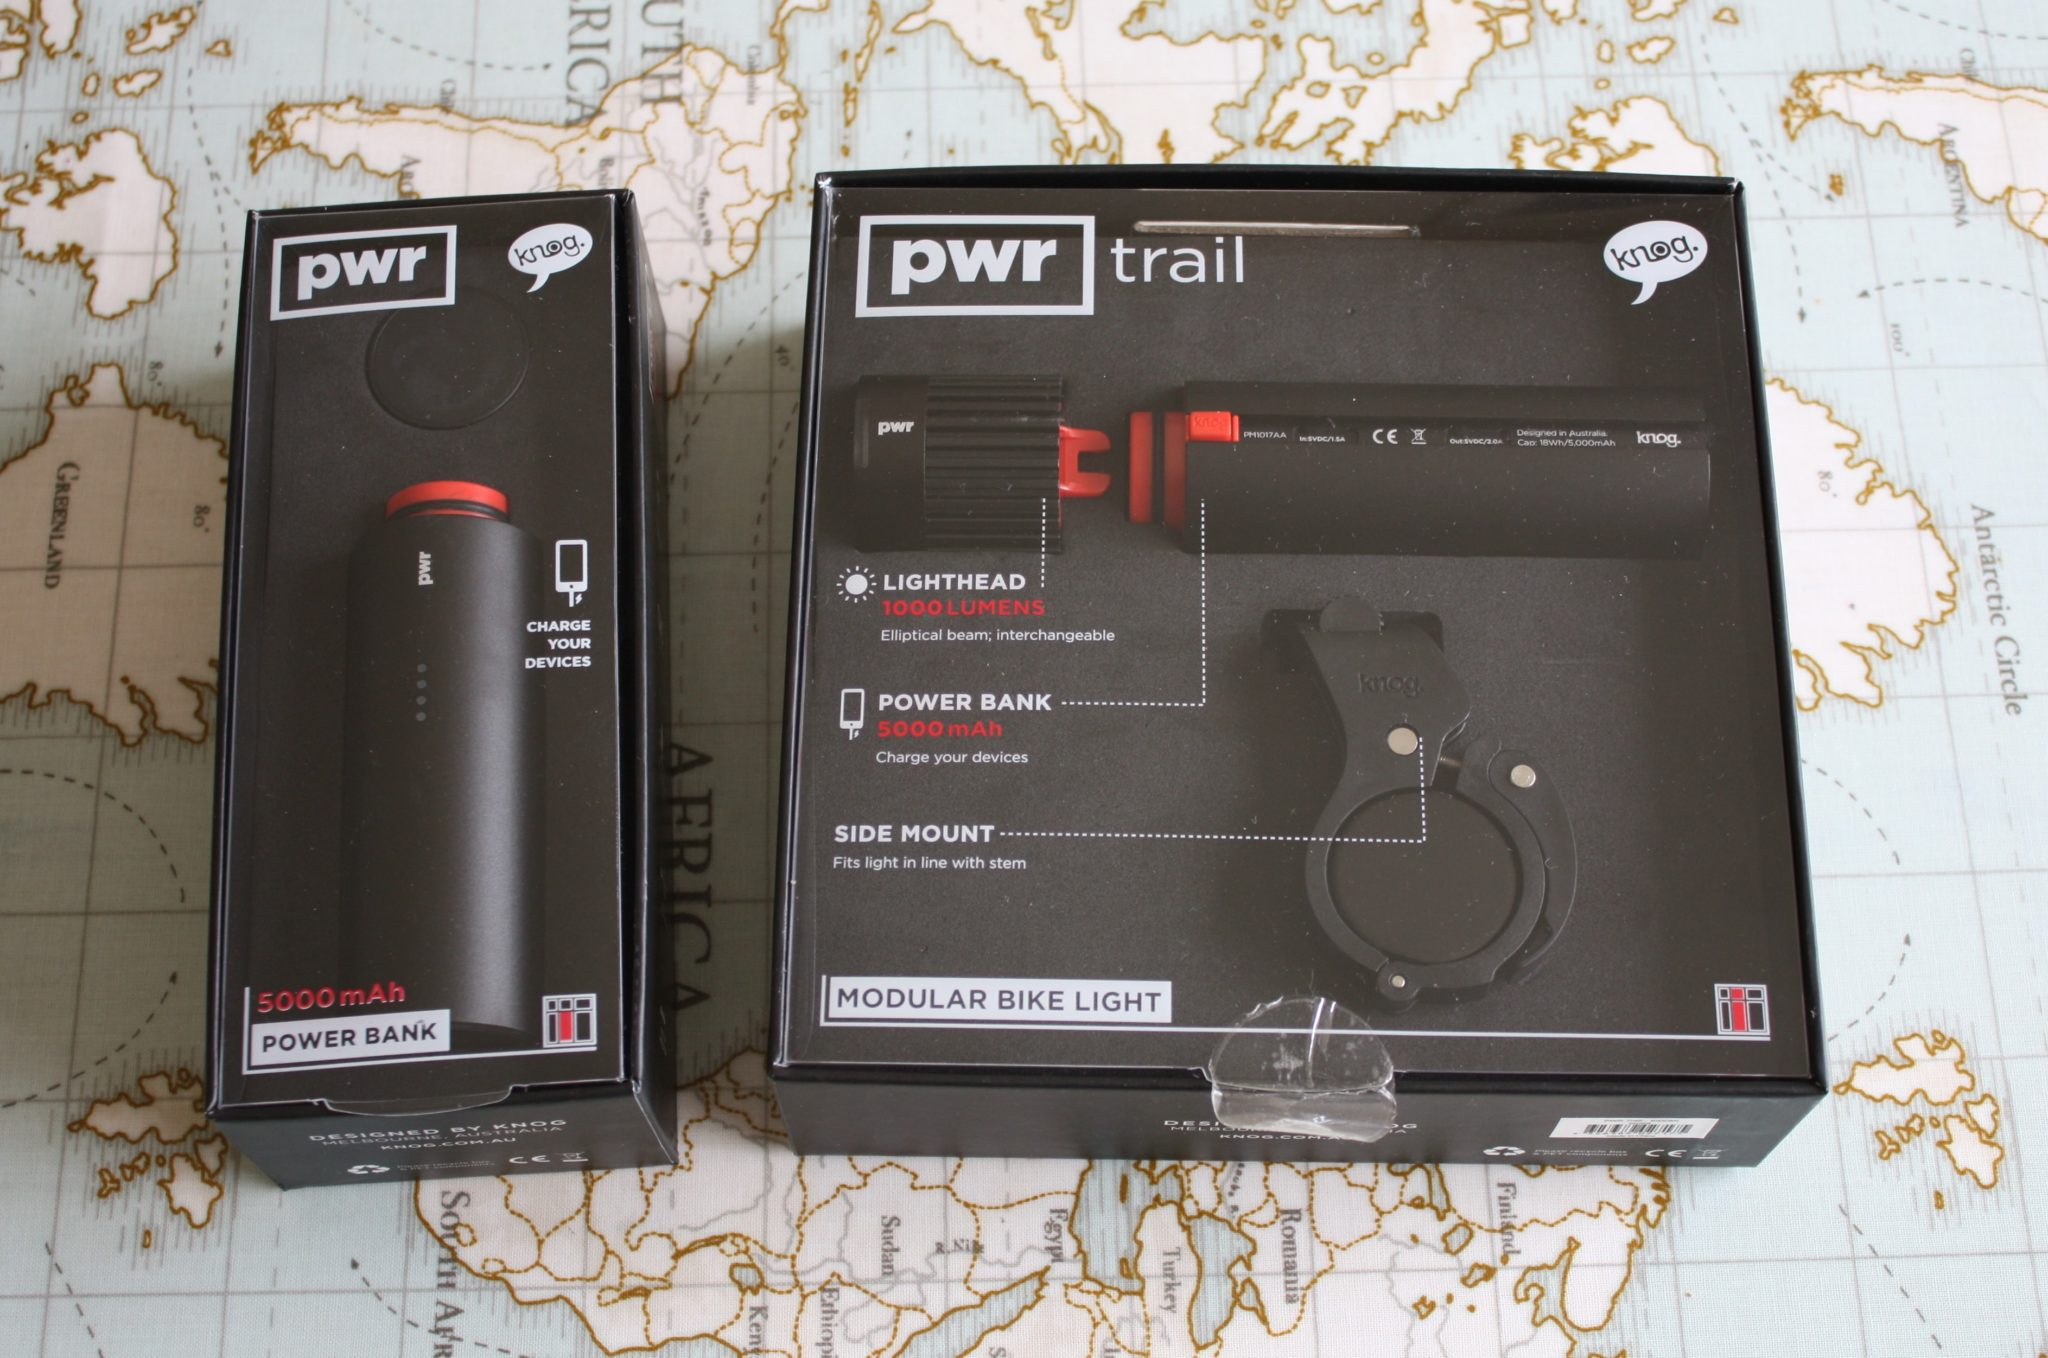 Knog PWR Trail Review